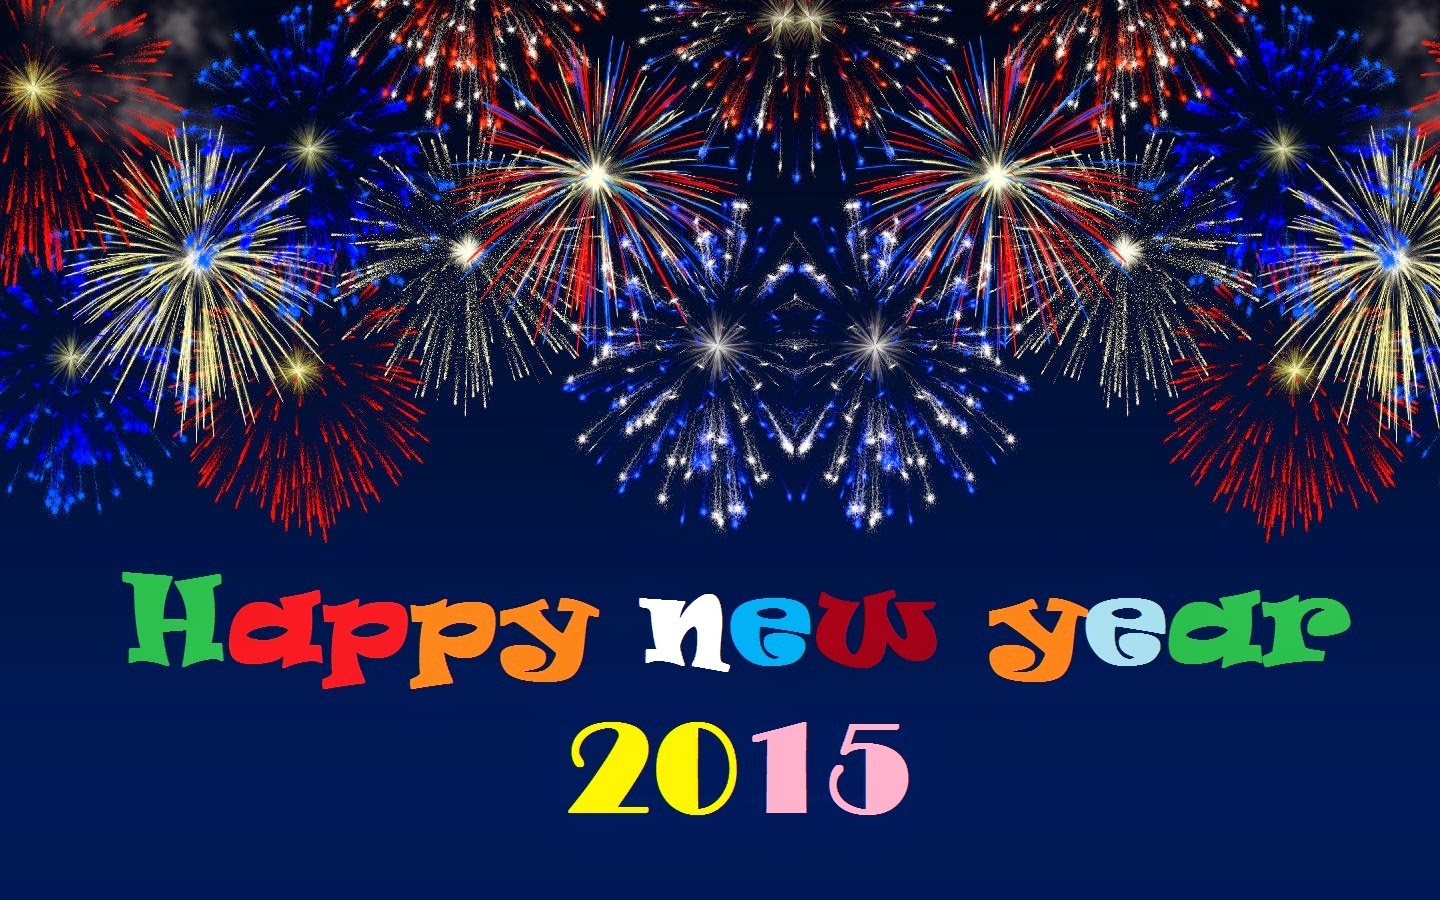 Happy New Year 2015 Image HD For Desktop 899300   Ongur 1440x900